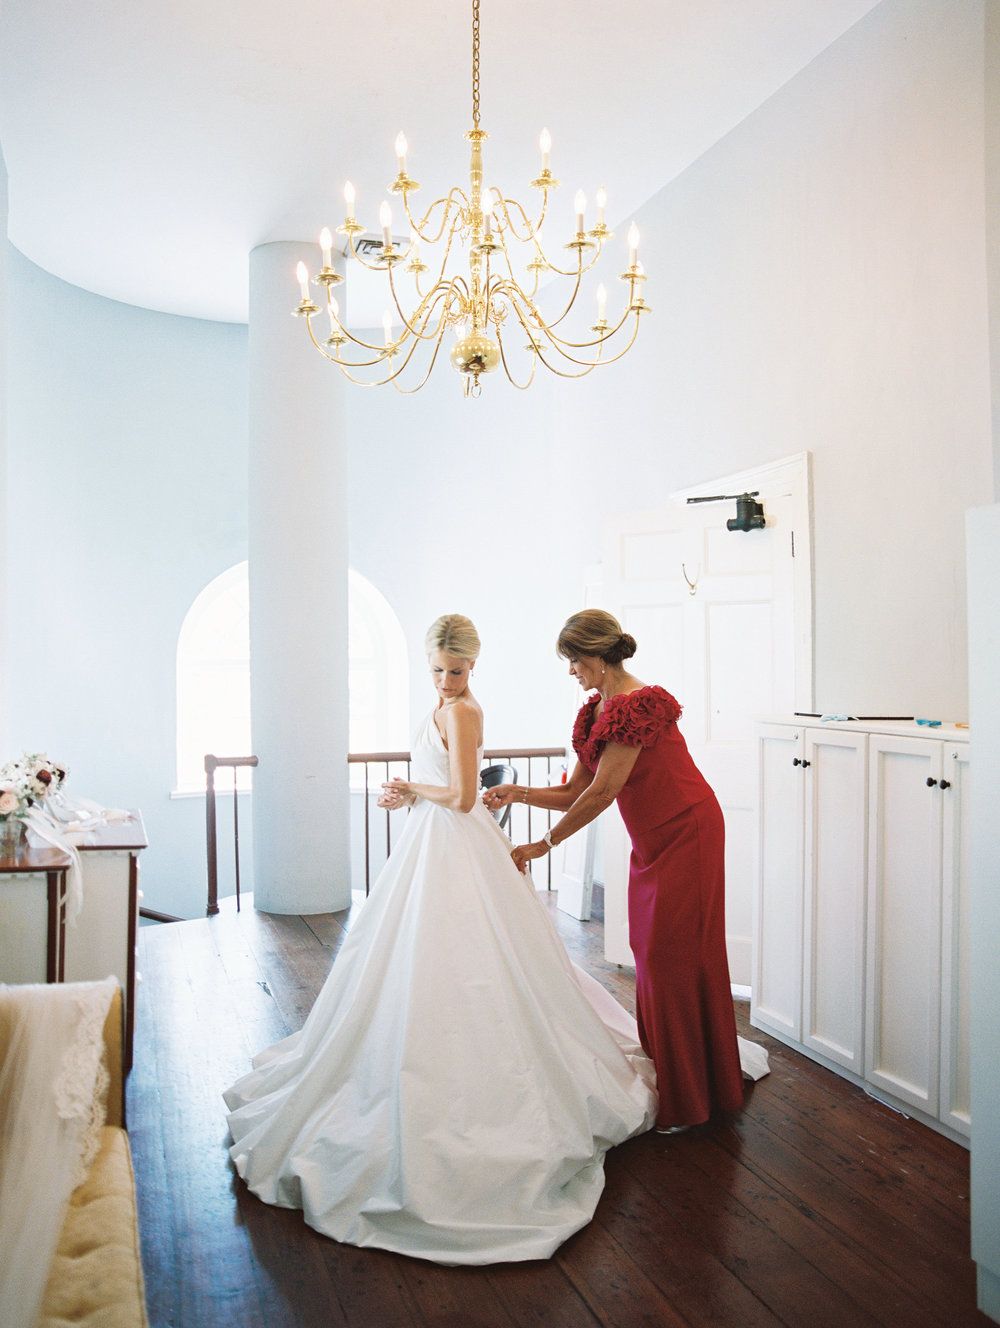 Charleston Bride in a Romona Keveaz gown from Maddison Row  //  Wedding photography by Landon Jacob  //  A Lowcountry Wedding Magazine